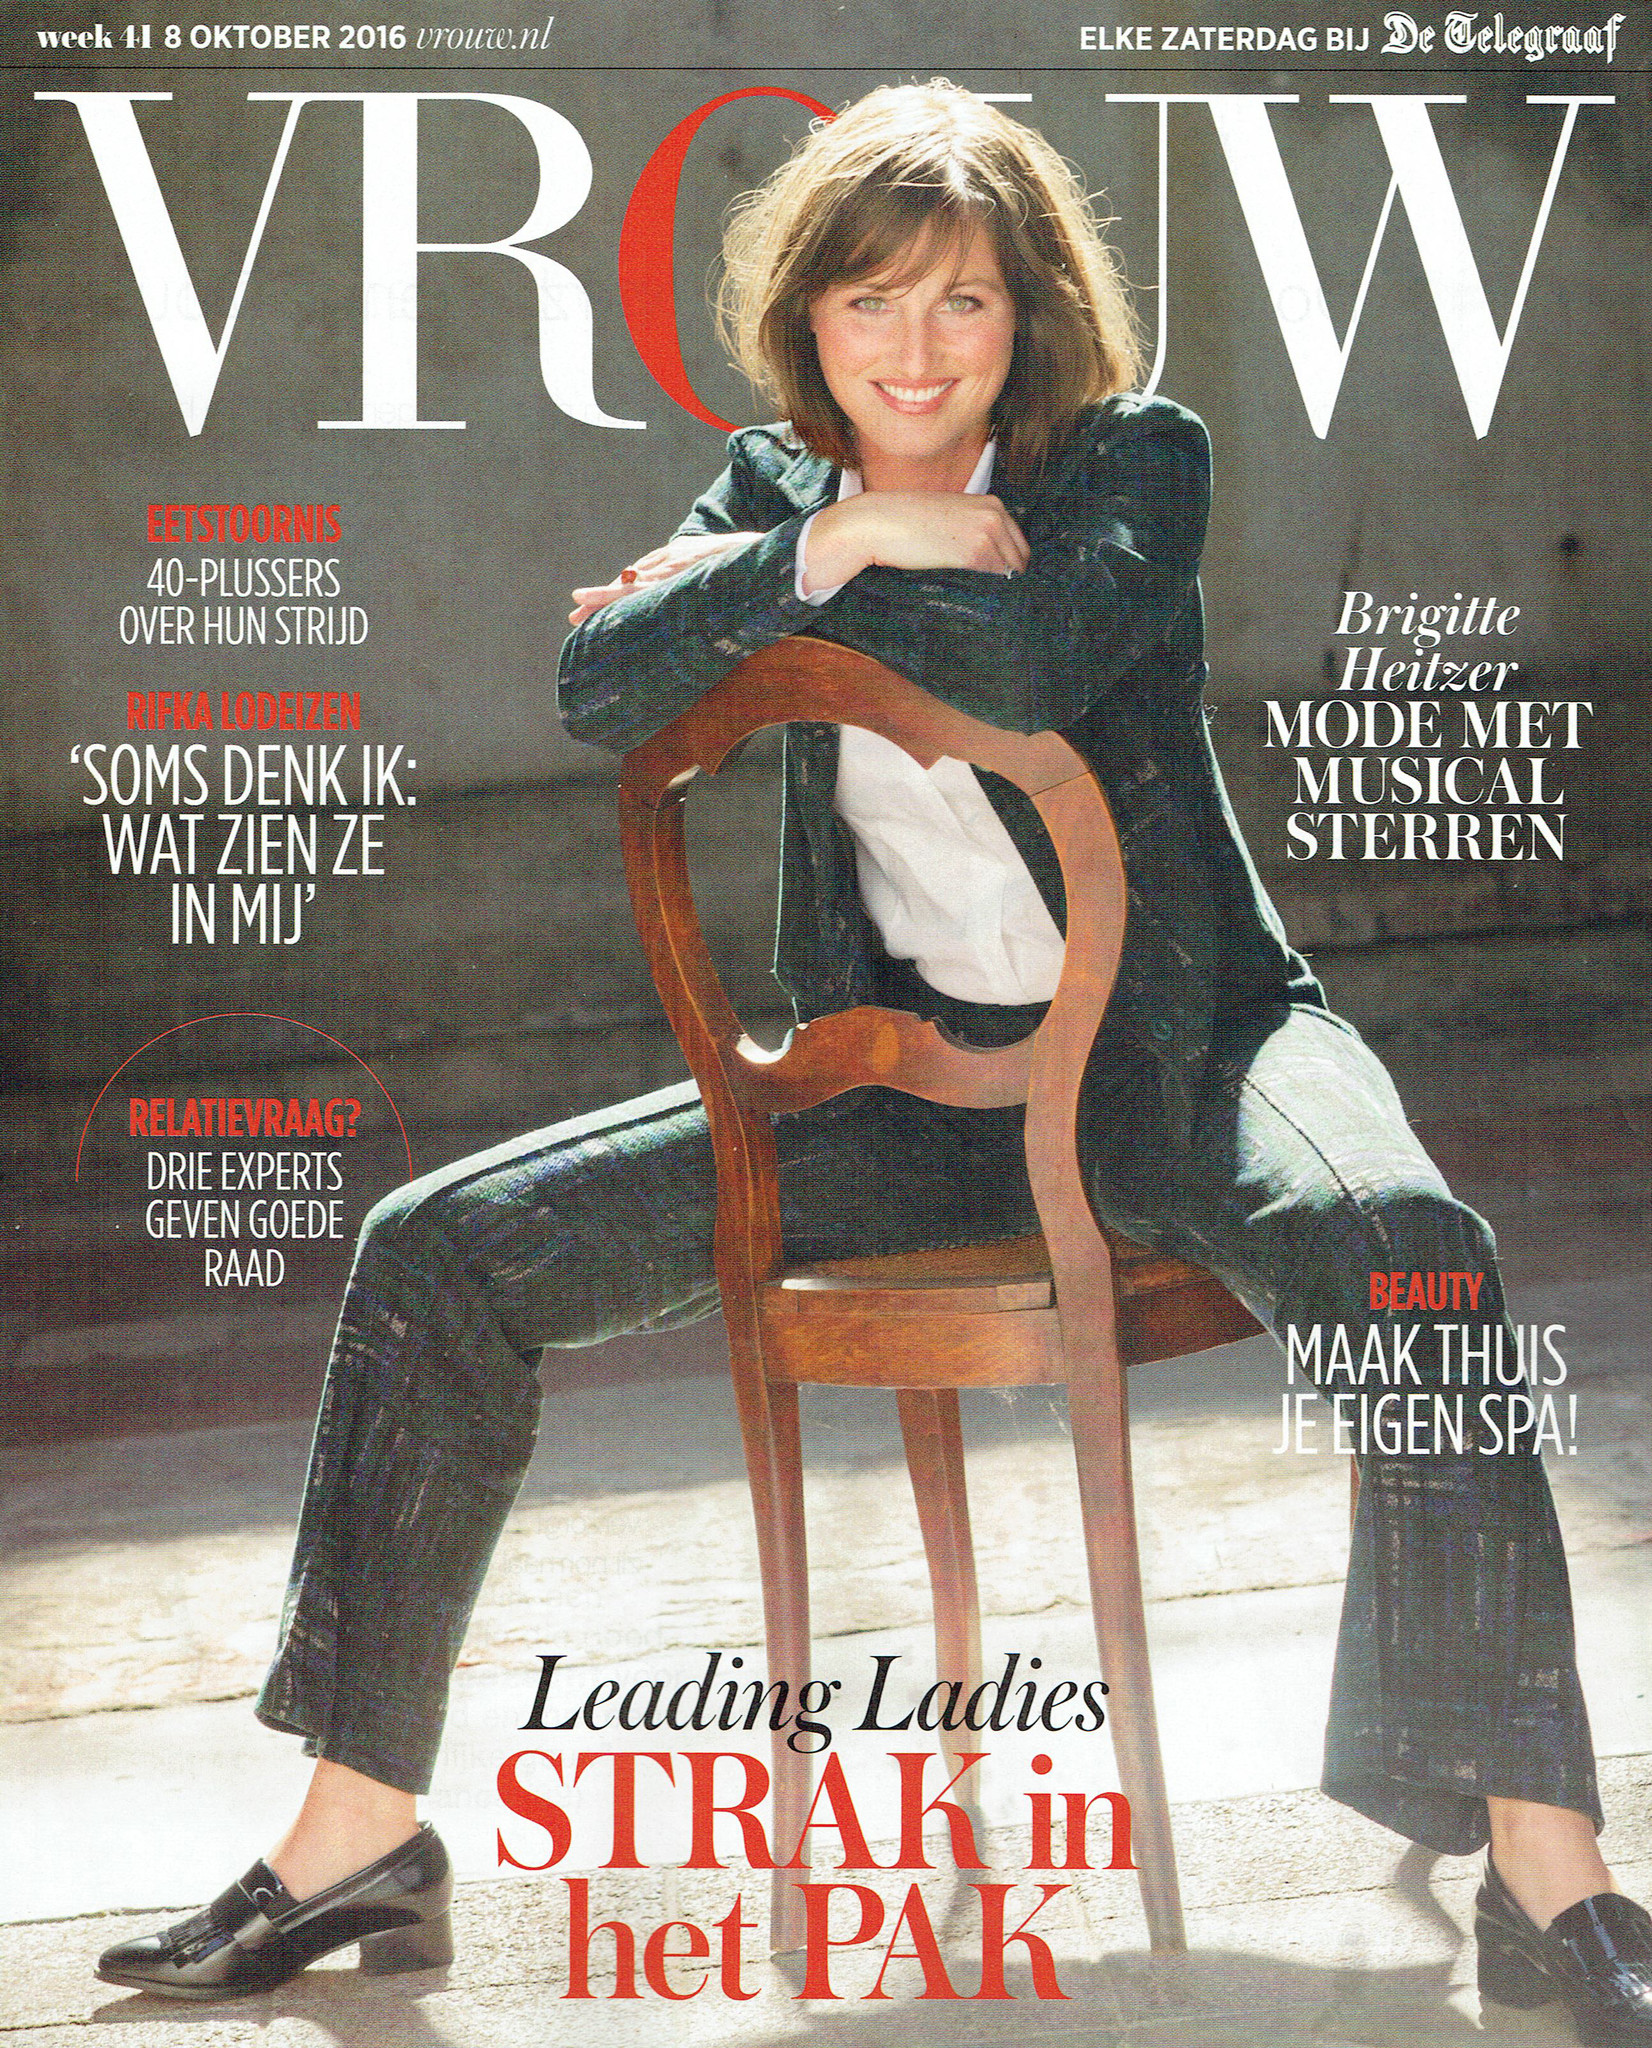 Vrouw frontpage